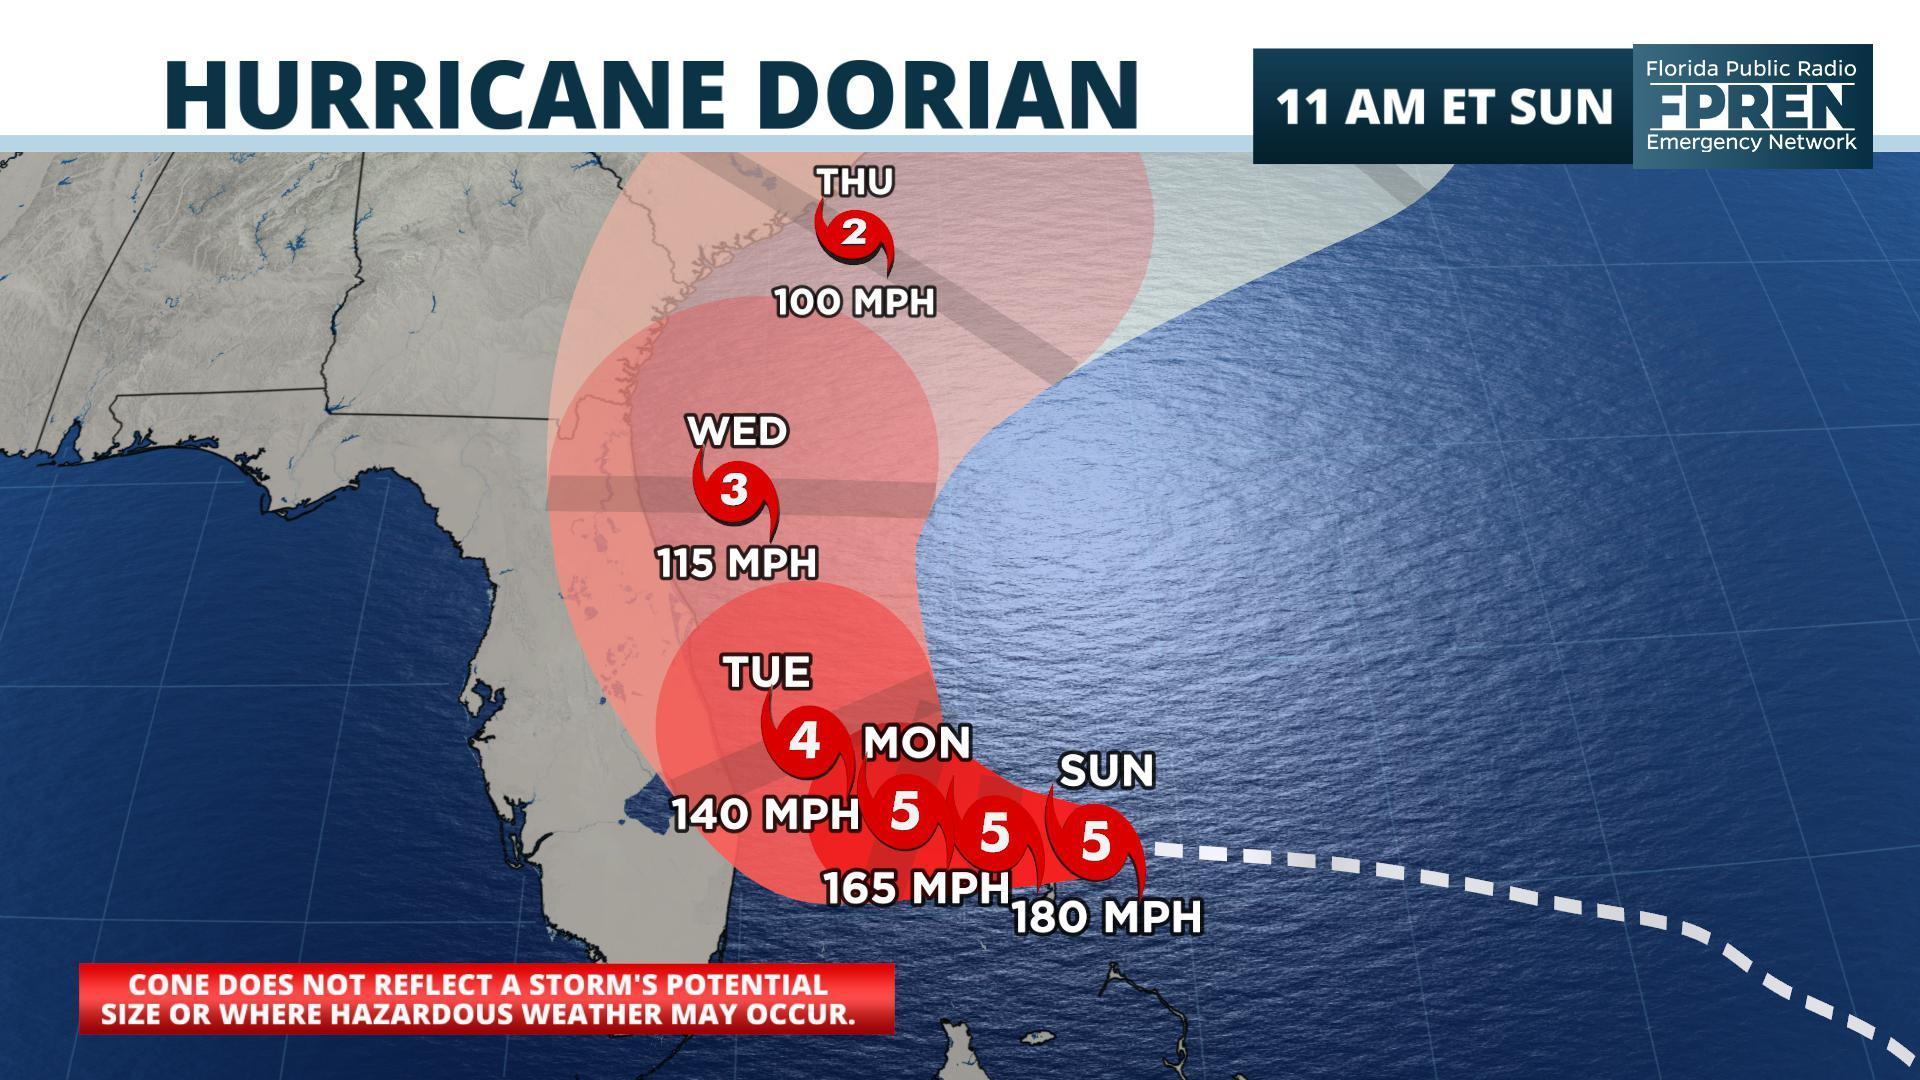 where is the hurricane dorian now